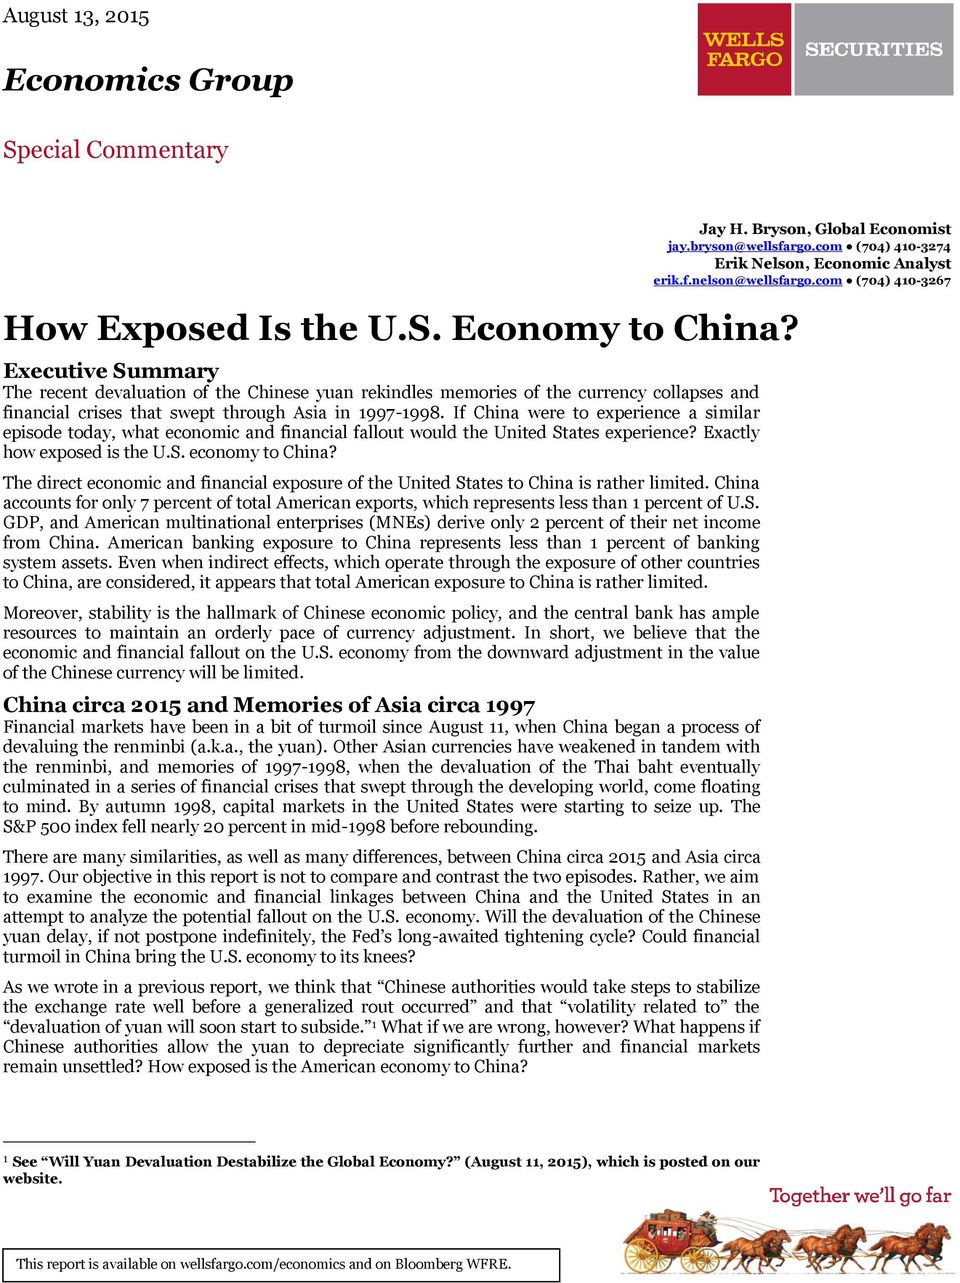 The direct economic and financial exposure of the United States to China is rather limited. China accounts for only 7 percent of total American exports, which represents less than 1 percent of U.S. GDP, and American multinational enterprises (MNEs) derive only 2 percent of their net income from China.